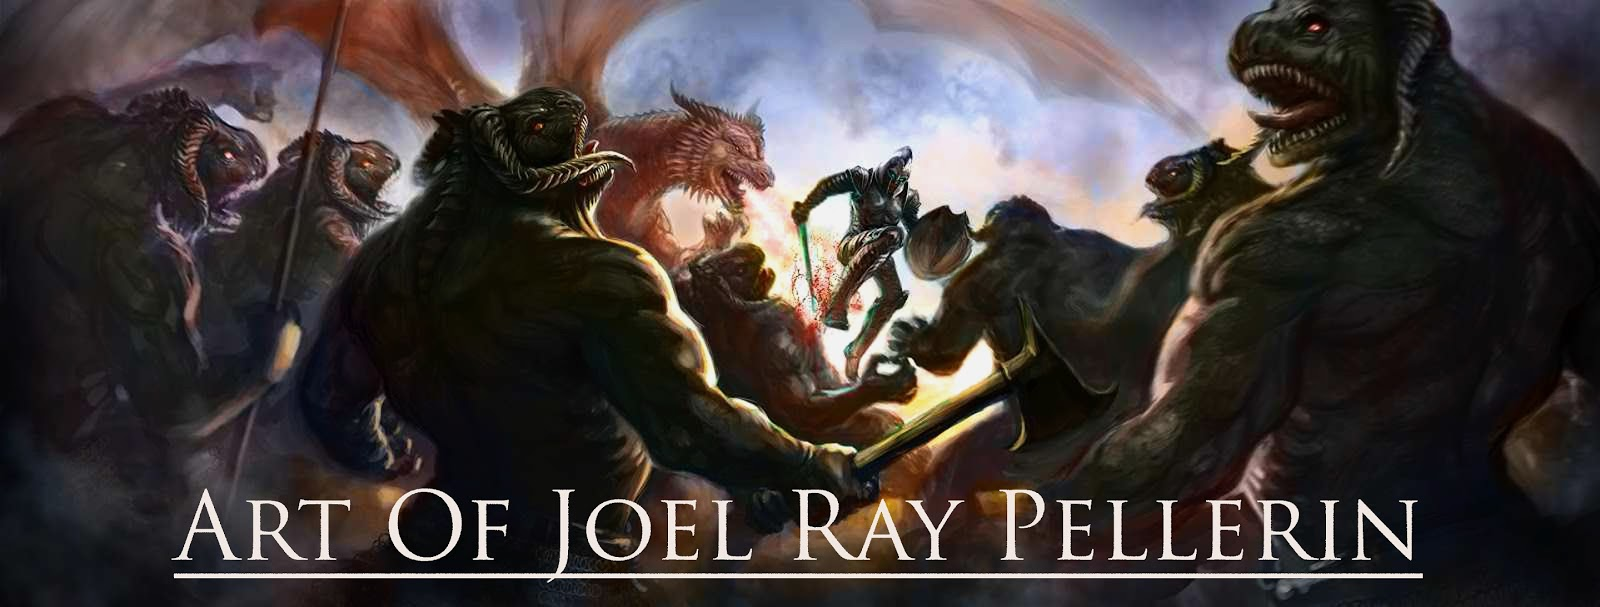 Art of Joel Ray Pellerin